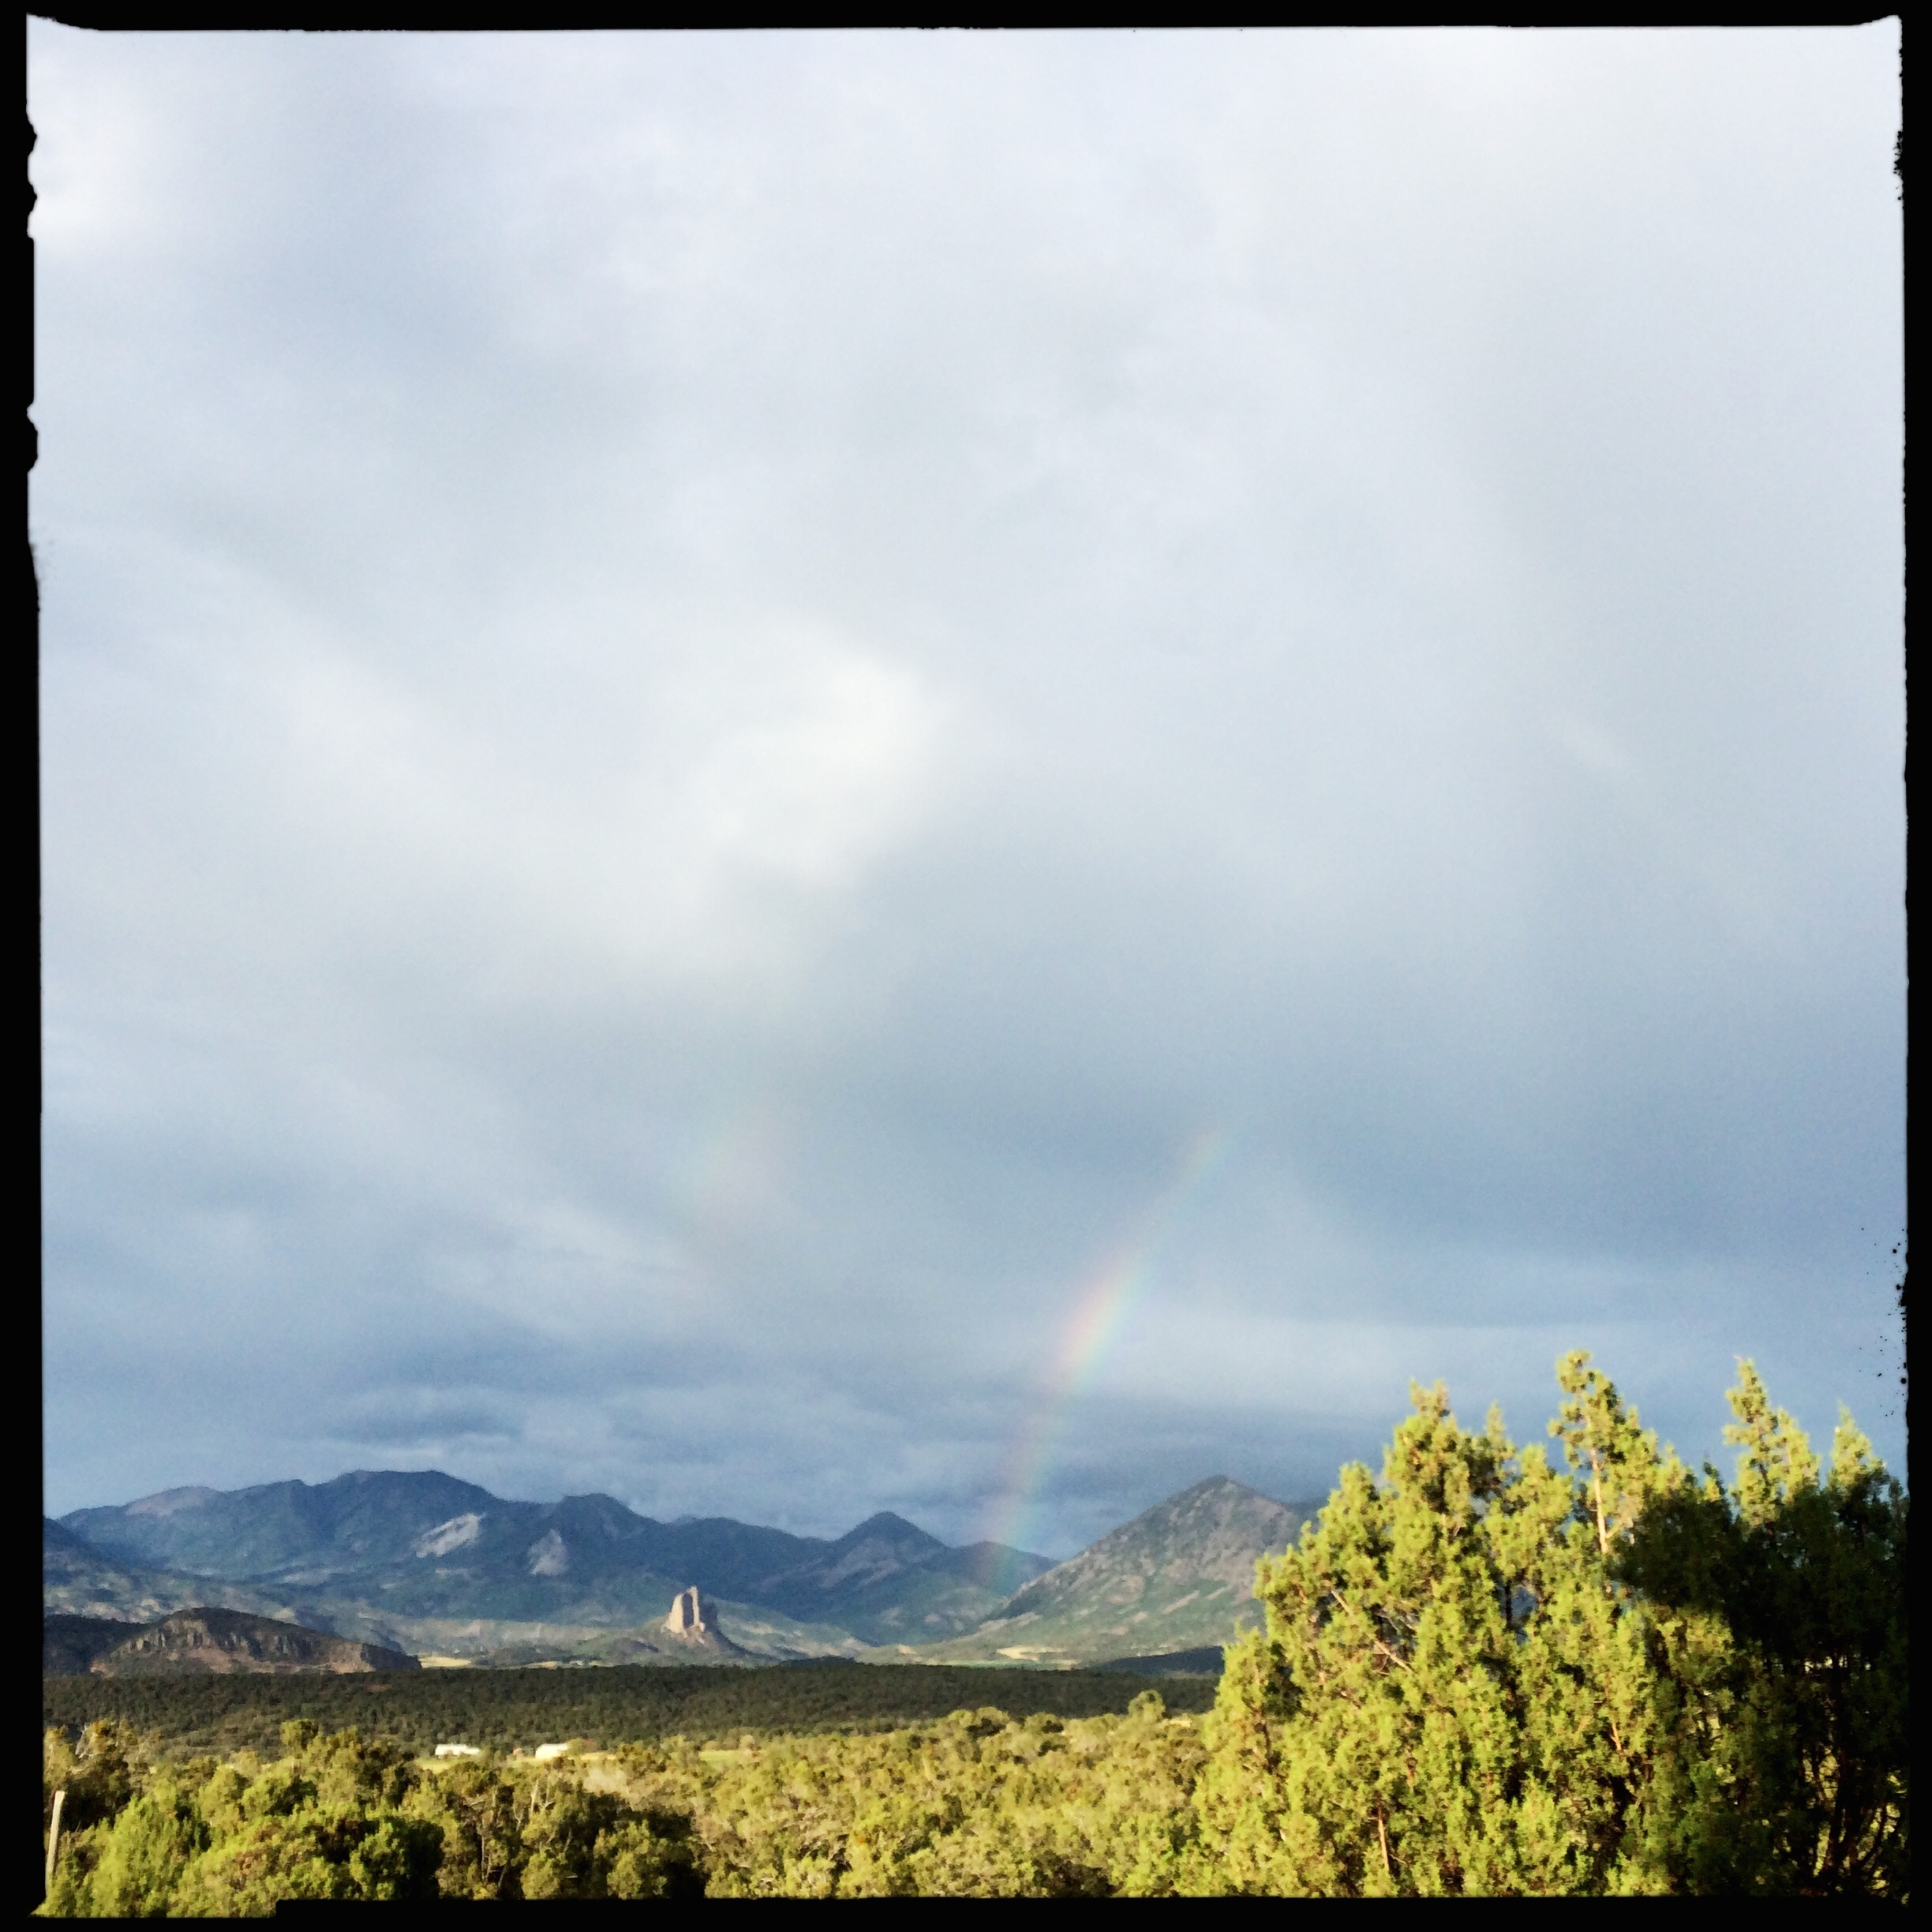 As I finished the over-toasted, under-tomatoed BLT, the sky gave up another rainbow.